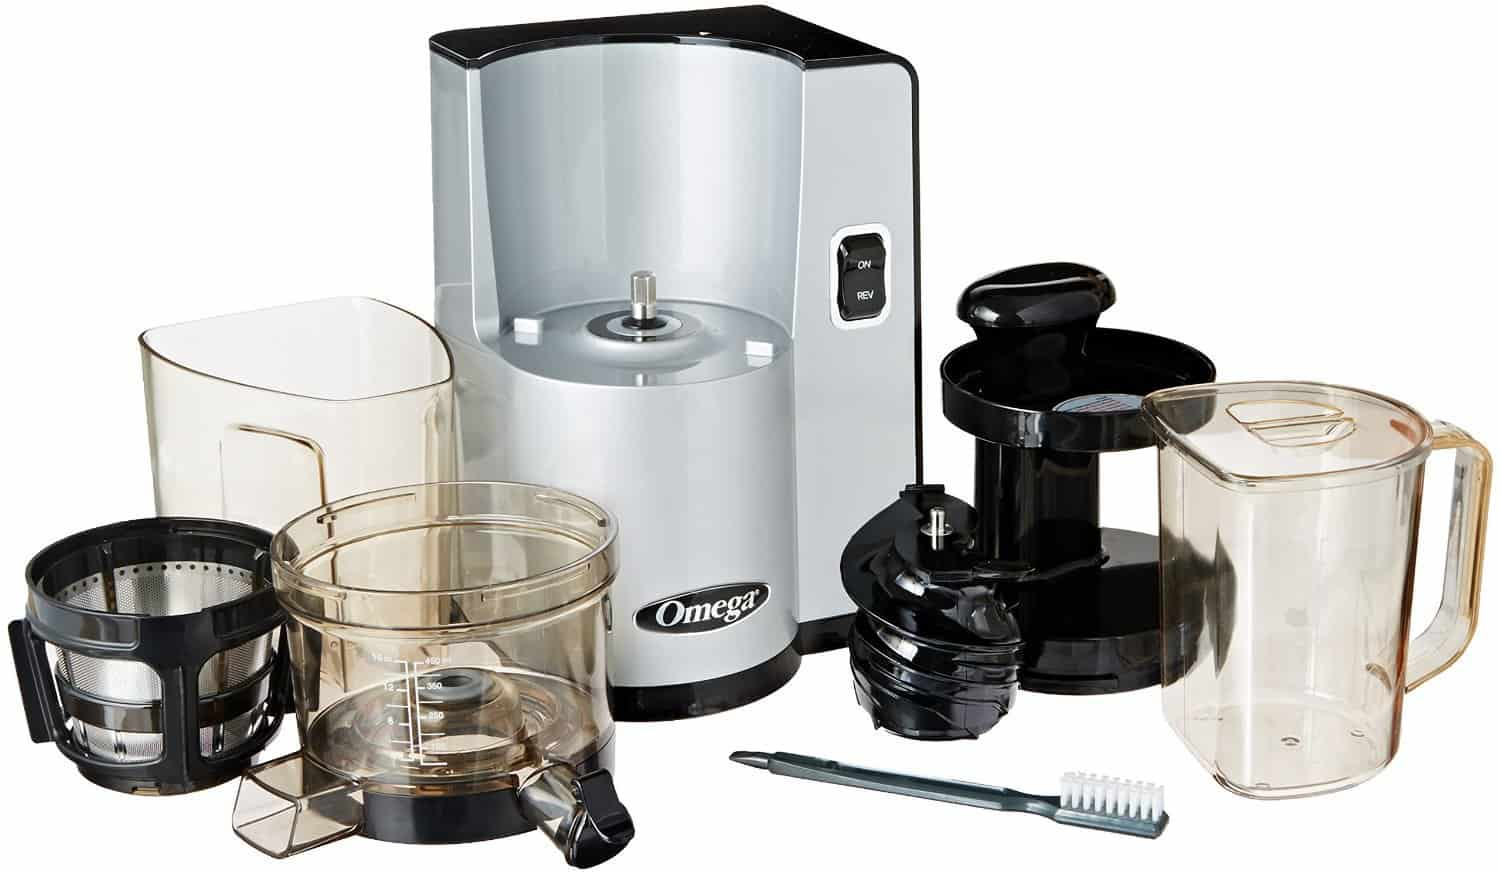 Omega Juicer VSJ843QS Review